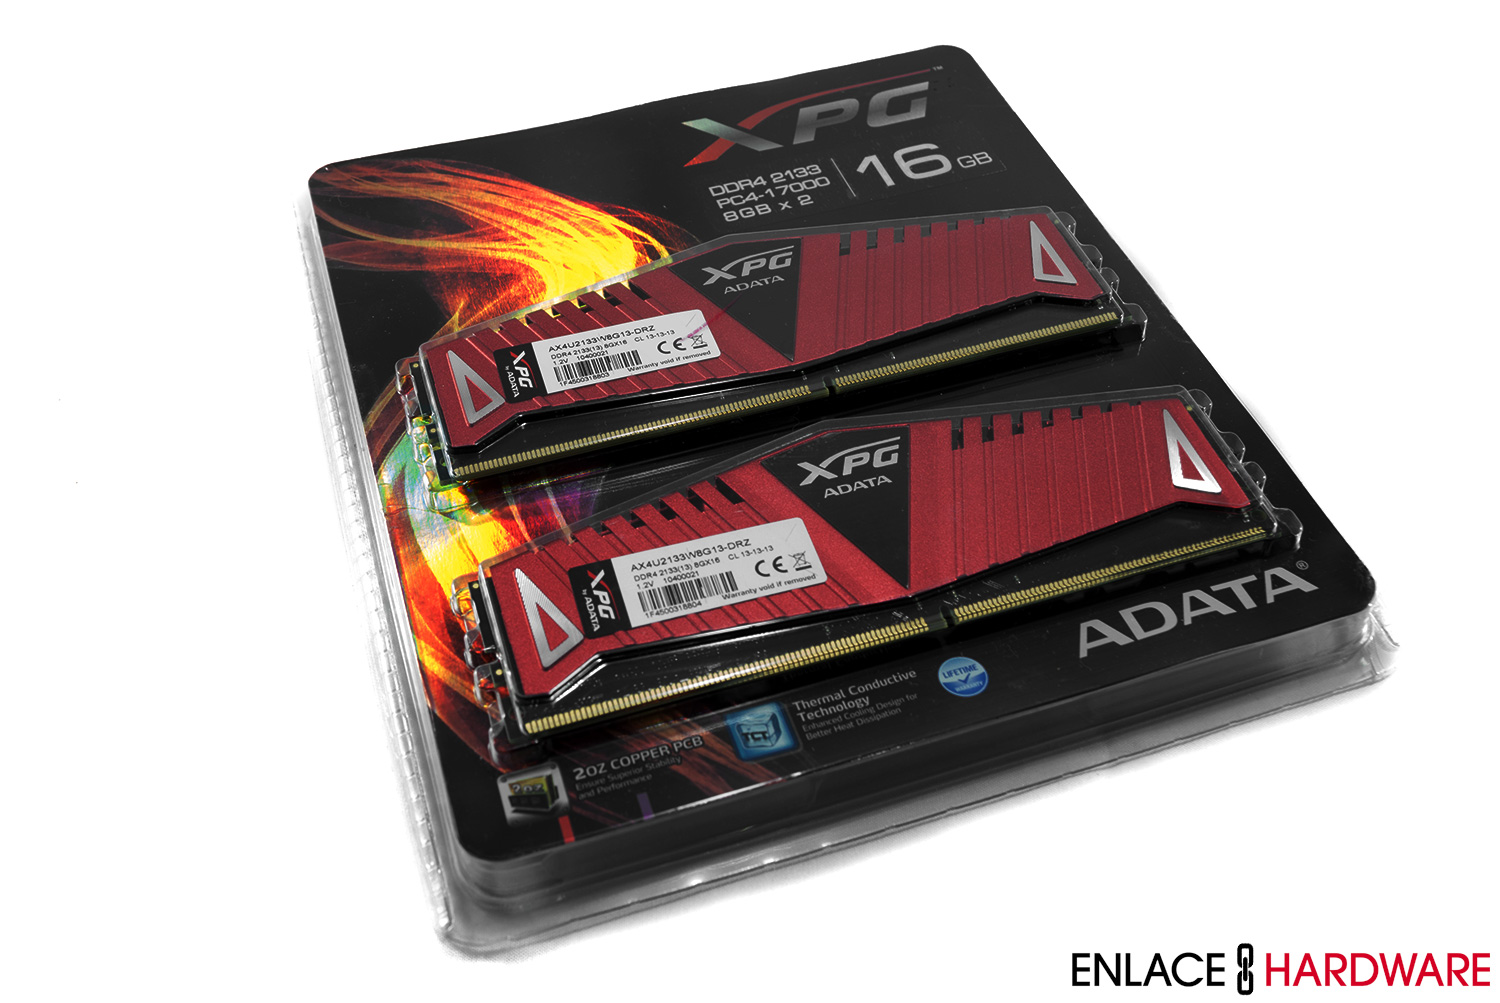 ADATA XPG Z1 16GB 2133MHz Review